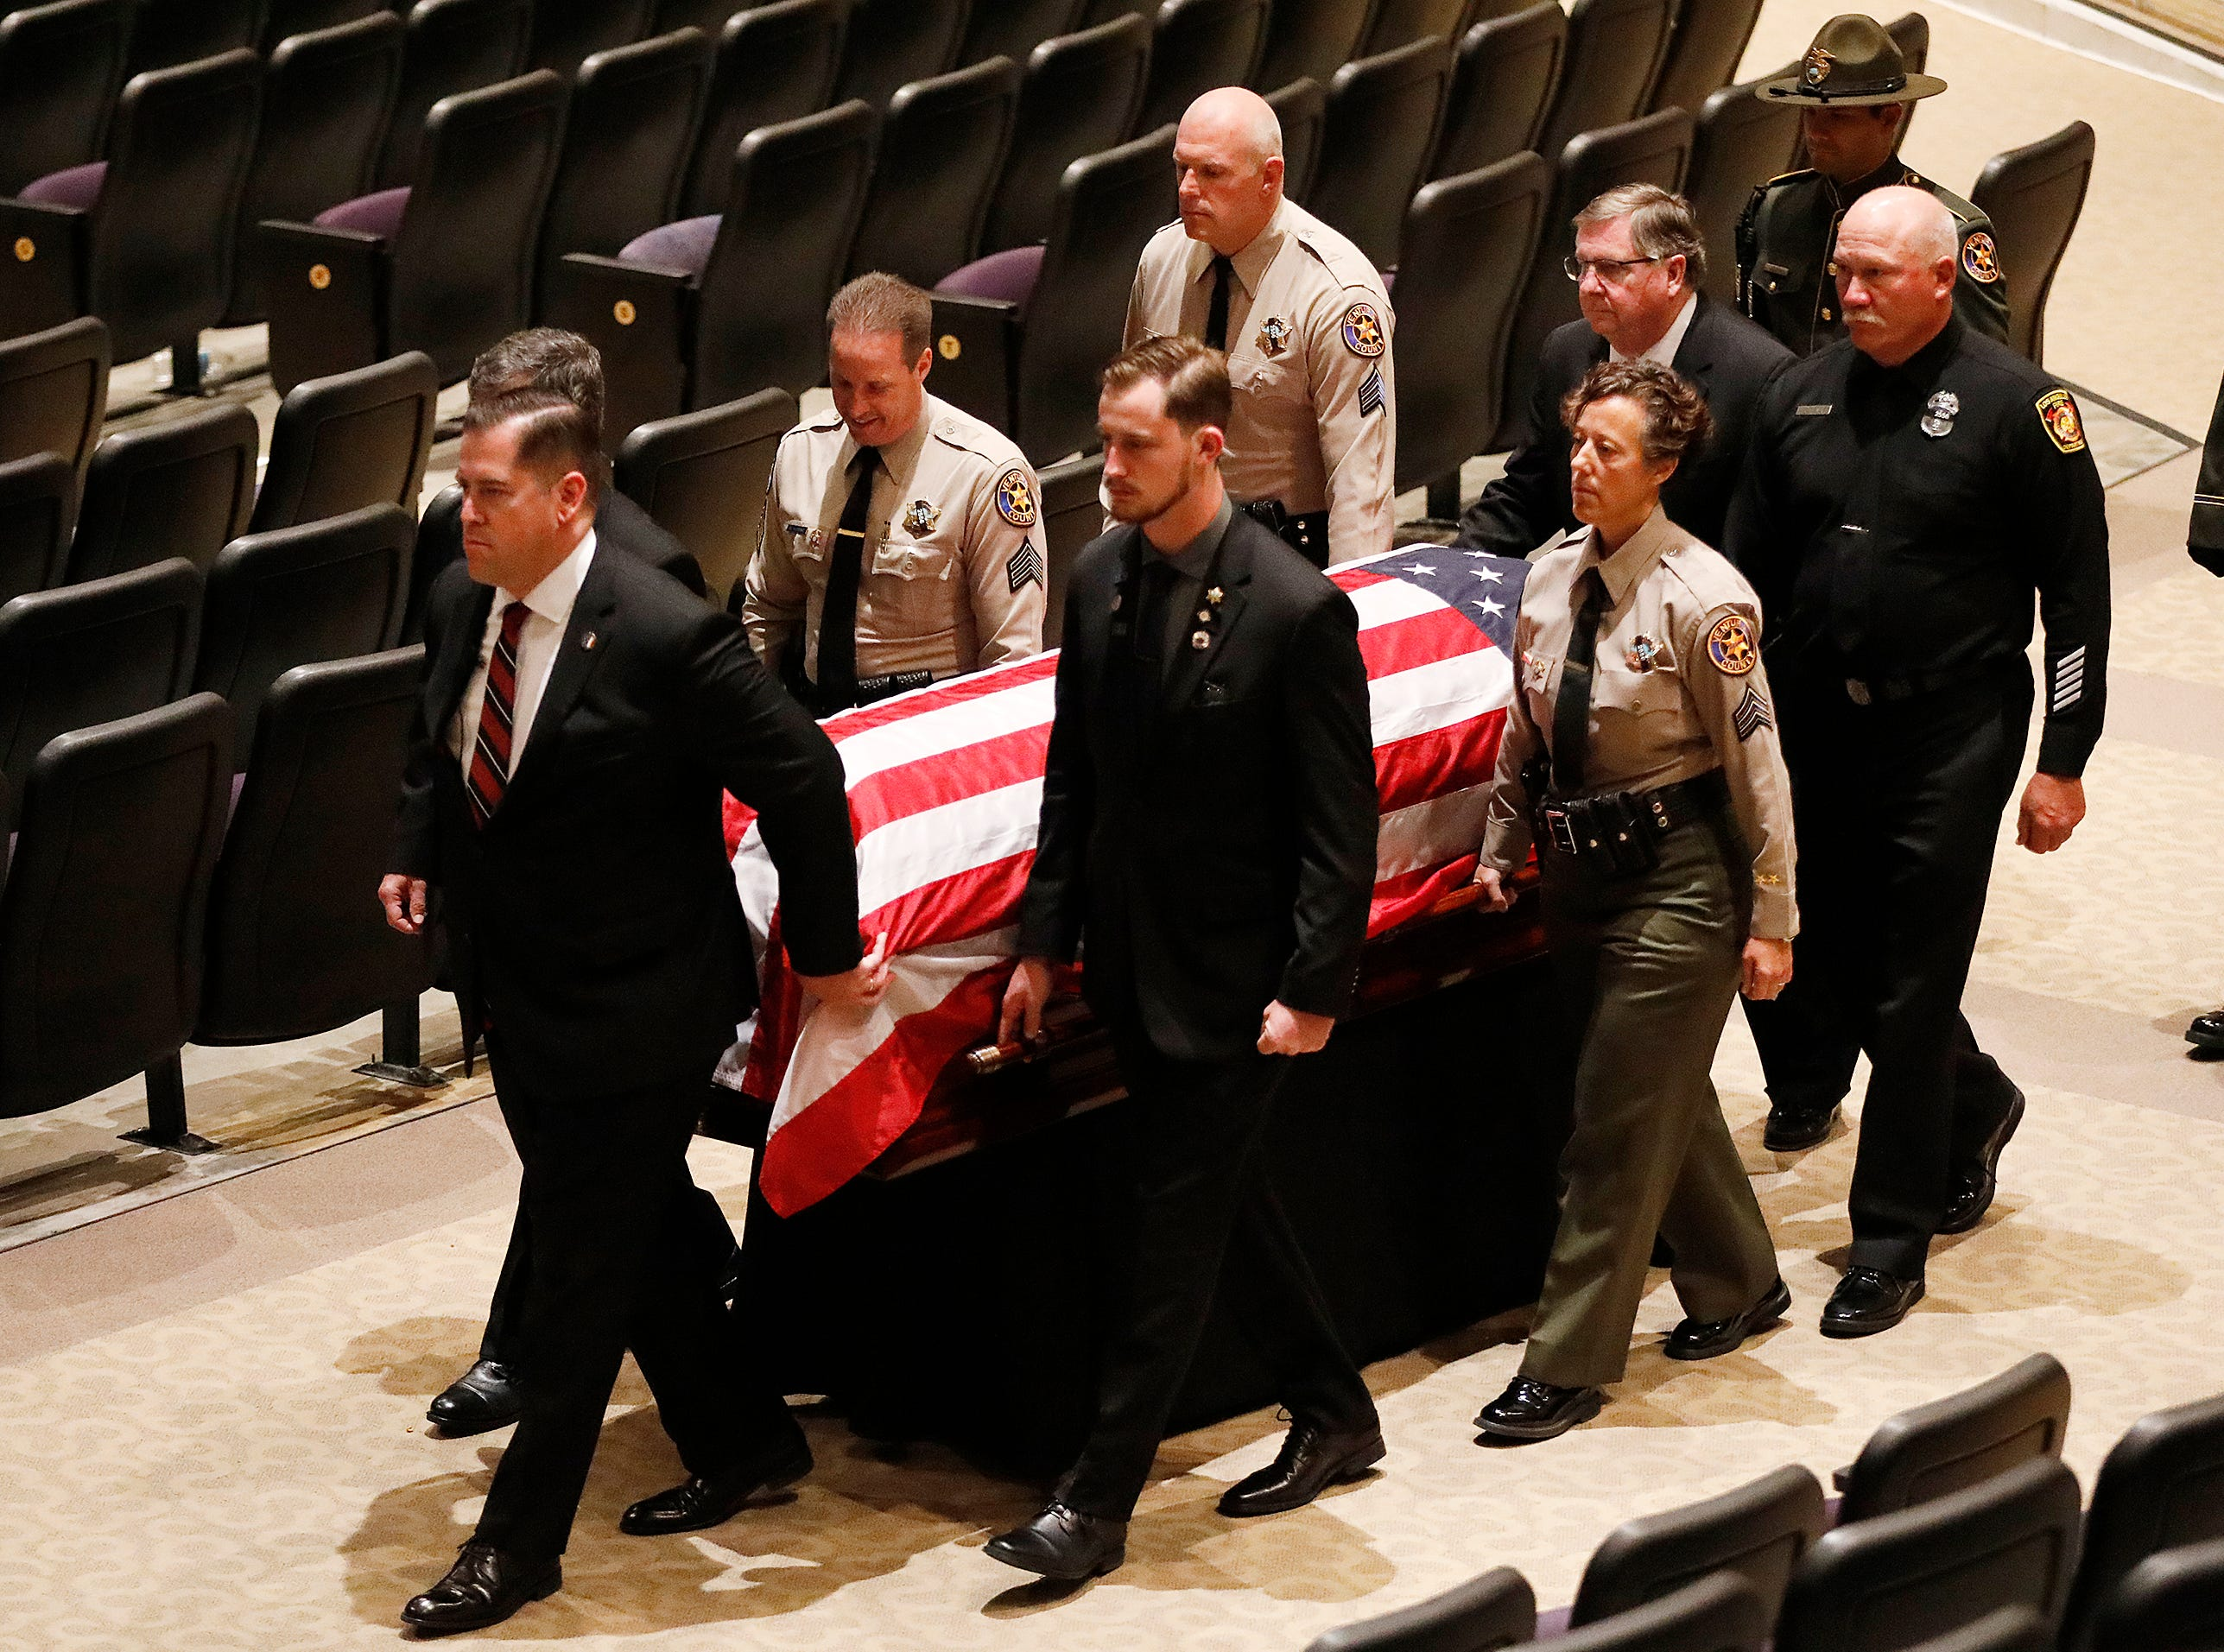 The casket with the body of Ventura County Sheriff's Office Sgt. Ron Helus is carried out after his memorial service at Calvary Community Church in Westlake Village on Thursday.